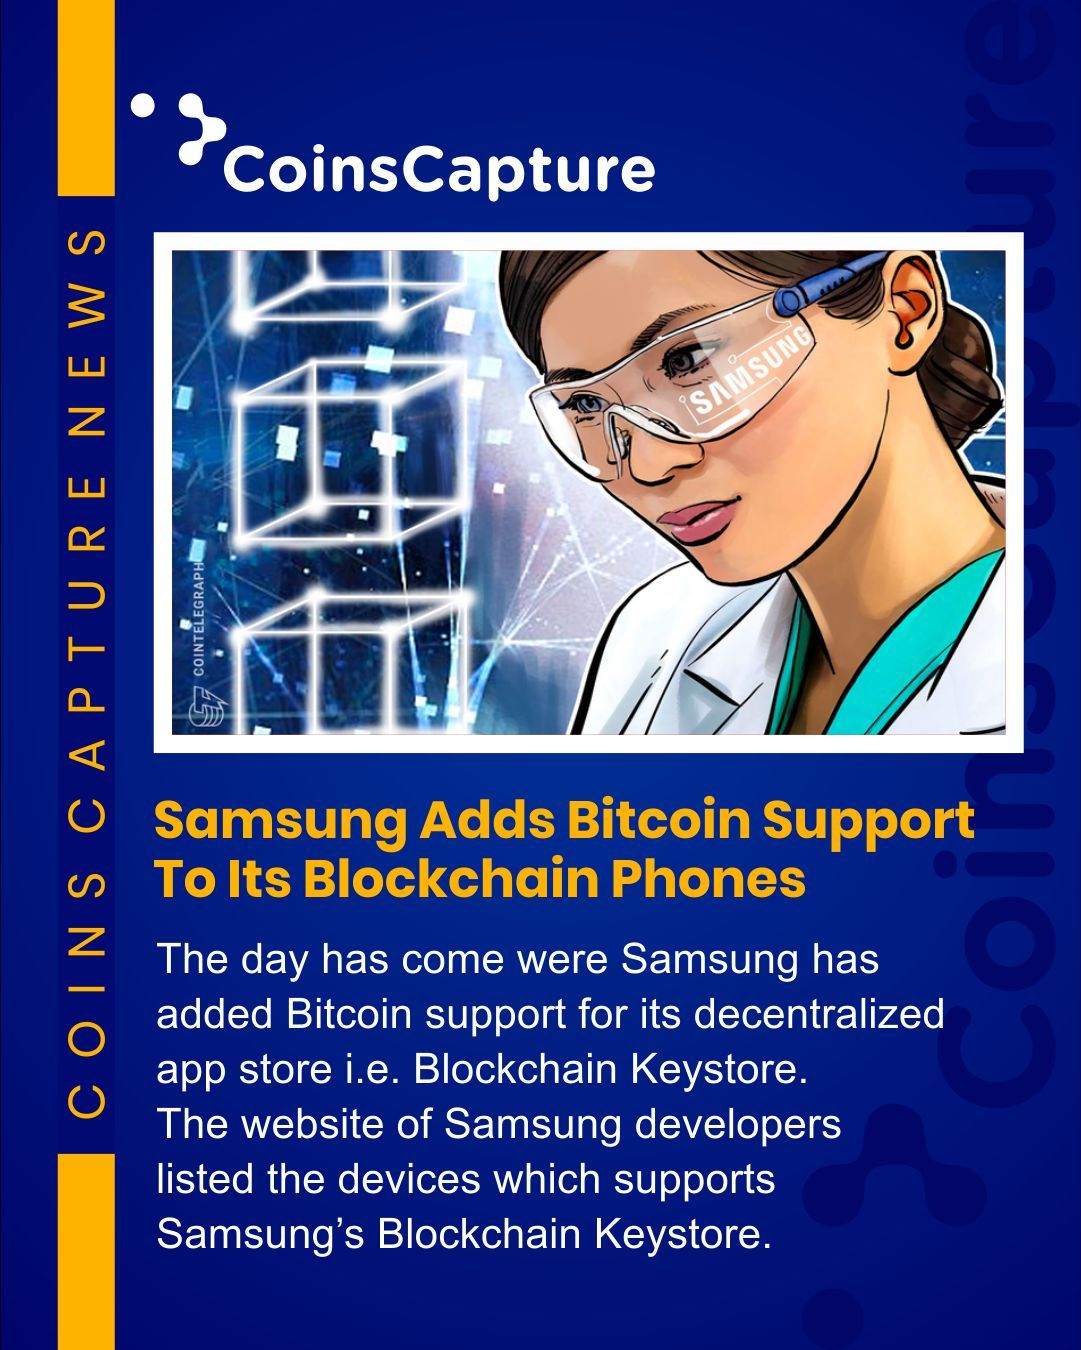 News of the day:  Samsung Adds Bitcoin Support To Its Blockchain Phones #cryptonews #dailynews #newsalert #dailymotivation #wednesdaywisdom #wednesdaythoughts #retweet #blockchain #samsung #bitcoin #follow4followback #followback